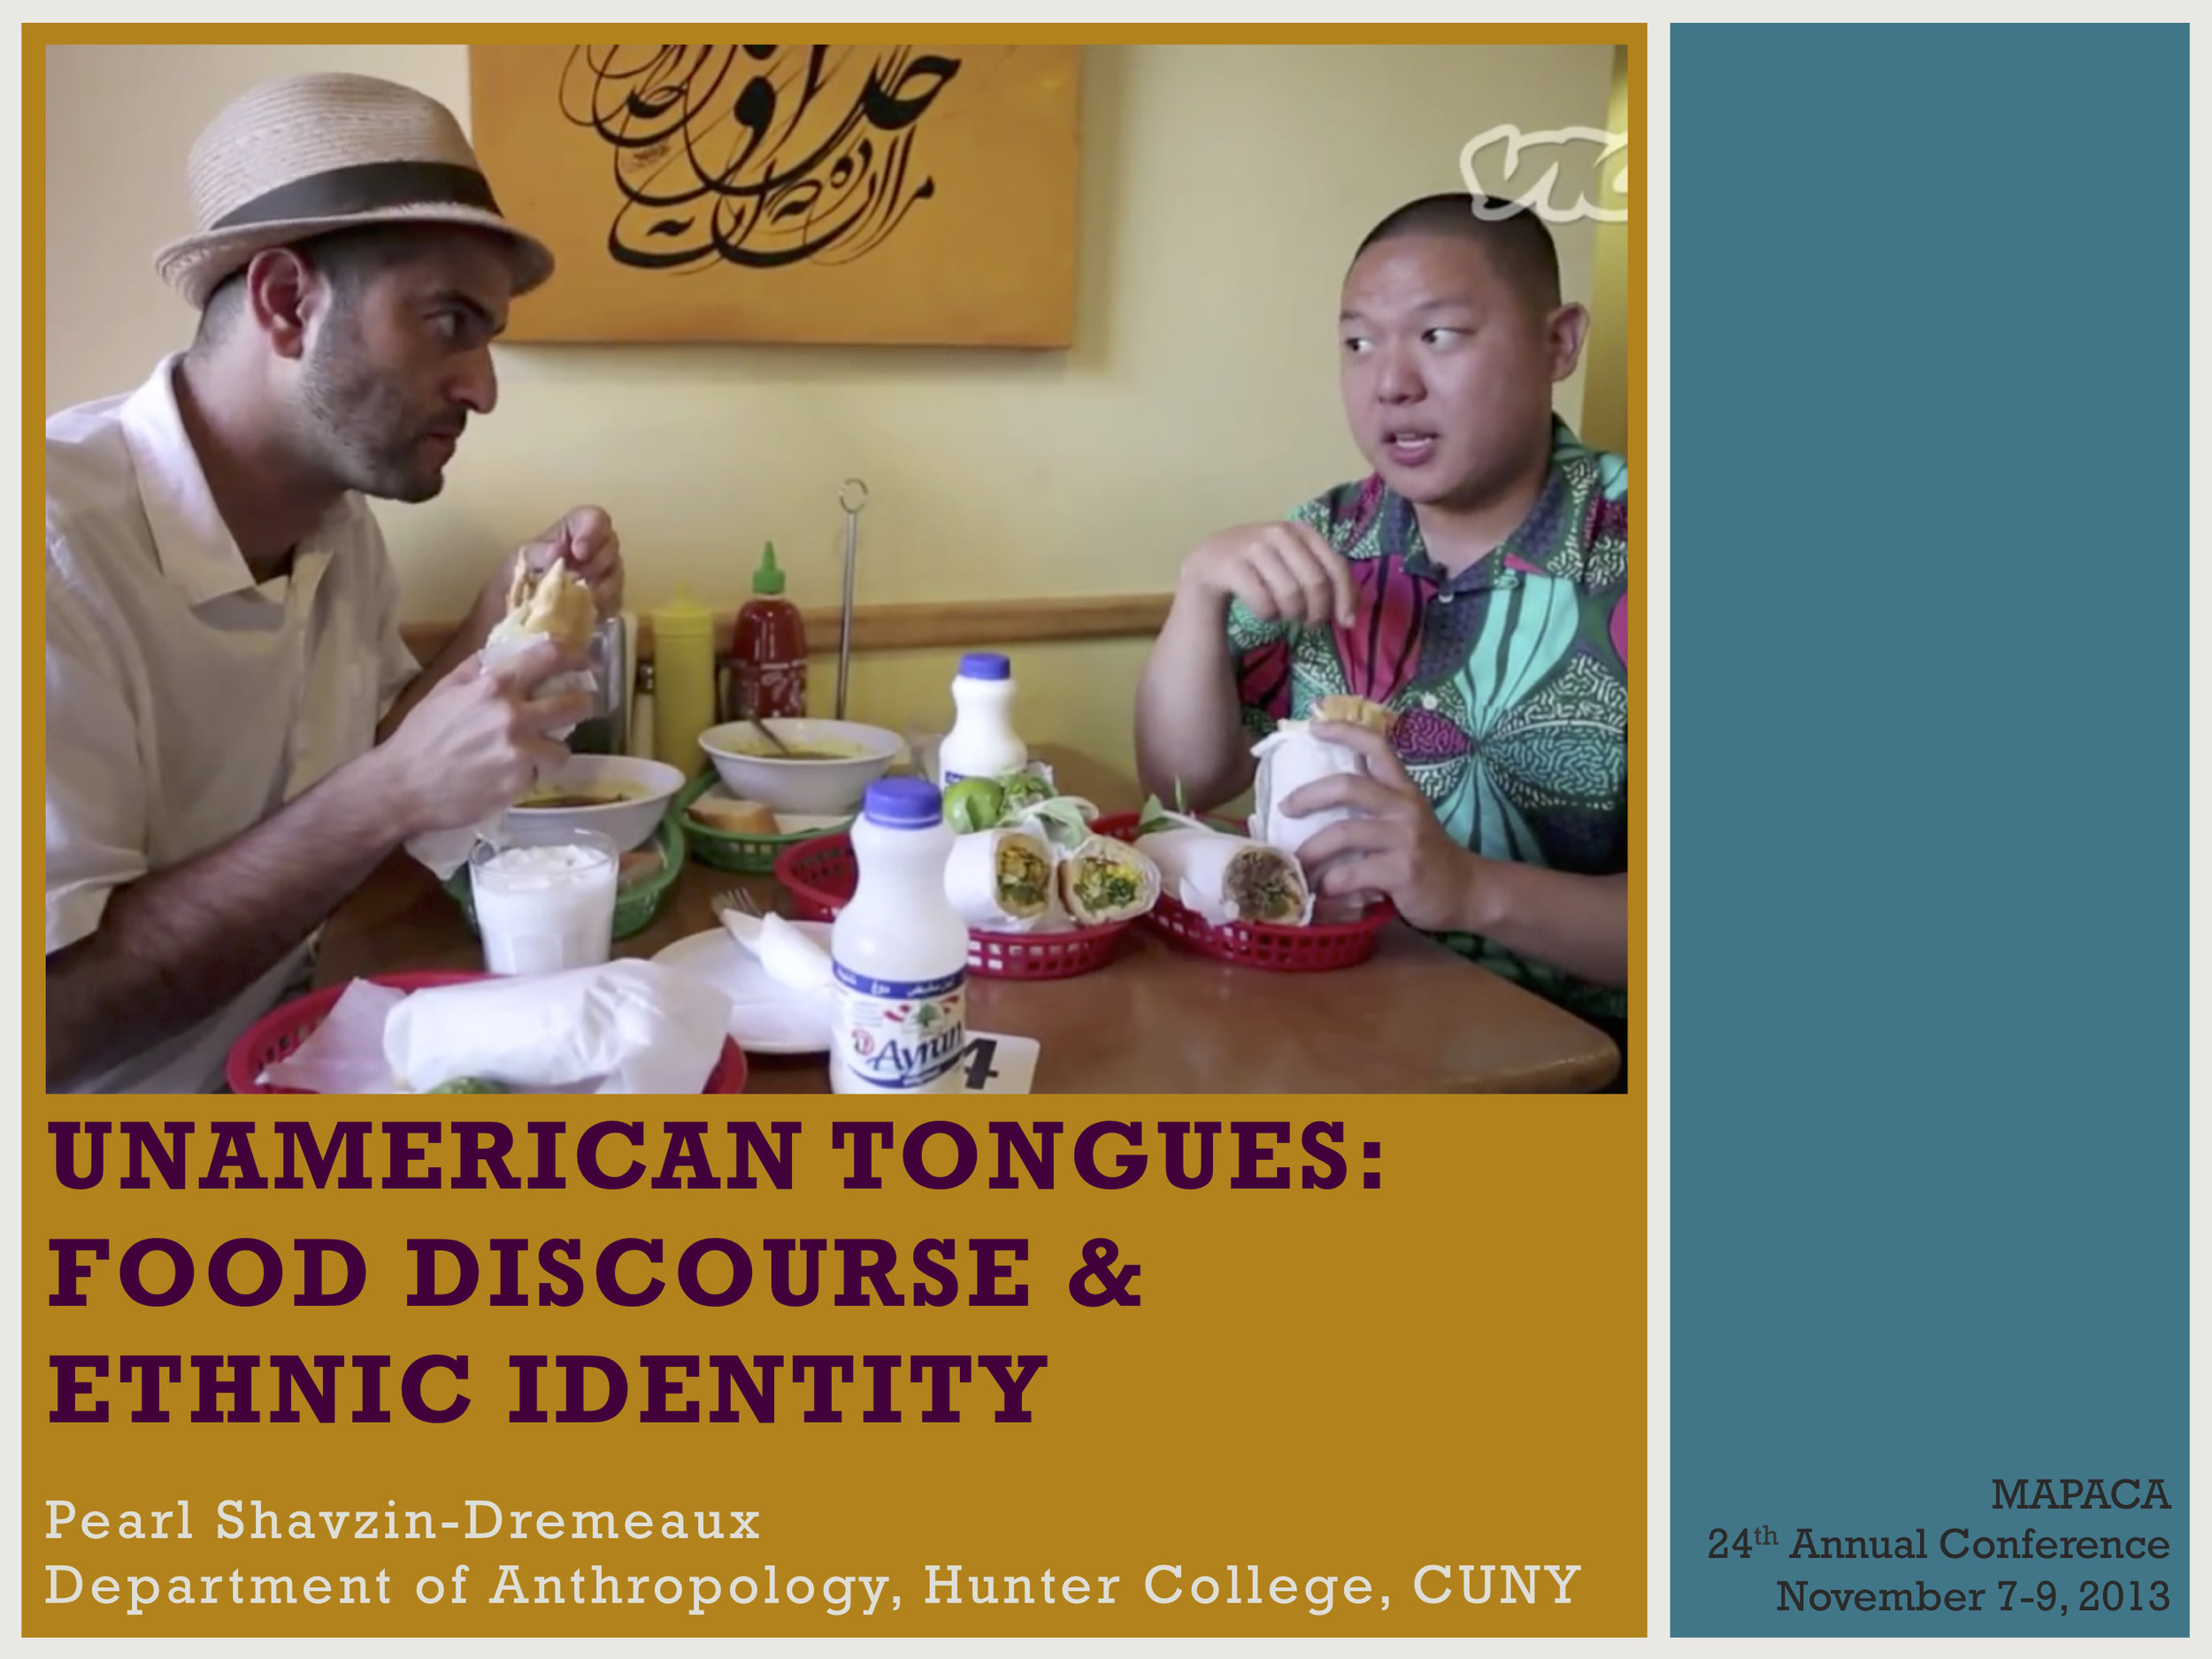 """Unamerican Tongues: Food Discourse & Ethnic Identity - The Project: MAPACA Presentation (Preliminary MA Thesis Work)Problem/Goal: A 15 minute presentation for an academic conferenceStakeholders: Members of the conference panel; audience (academics, students, independent scholars)Details: The presentation was for a panel at an interdisciplinary academic conference focused on popular and American cultural studies, held by the Mid-Atlantic Popular & American Culture Association (MAPACA). The presentation focused on a case study I conducted using early episodes of a food travelogue series hosted by Eddie Huang (currently Huang's World, formerly named Fresh Off the Boat). The presentation needed to provide enough information to help me share what I found with an audience that had varying degrees of knowledge and experience with food studies and/or linguistic anthropology.This presentation later became the foundation of my master's thesis, """"Rice, Rap, and Based FOBs: Food Discourse and Asian American Identity.""""Download this presentation here."""